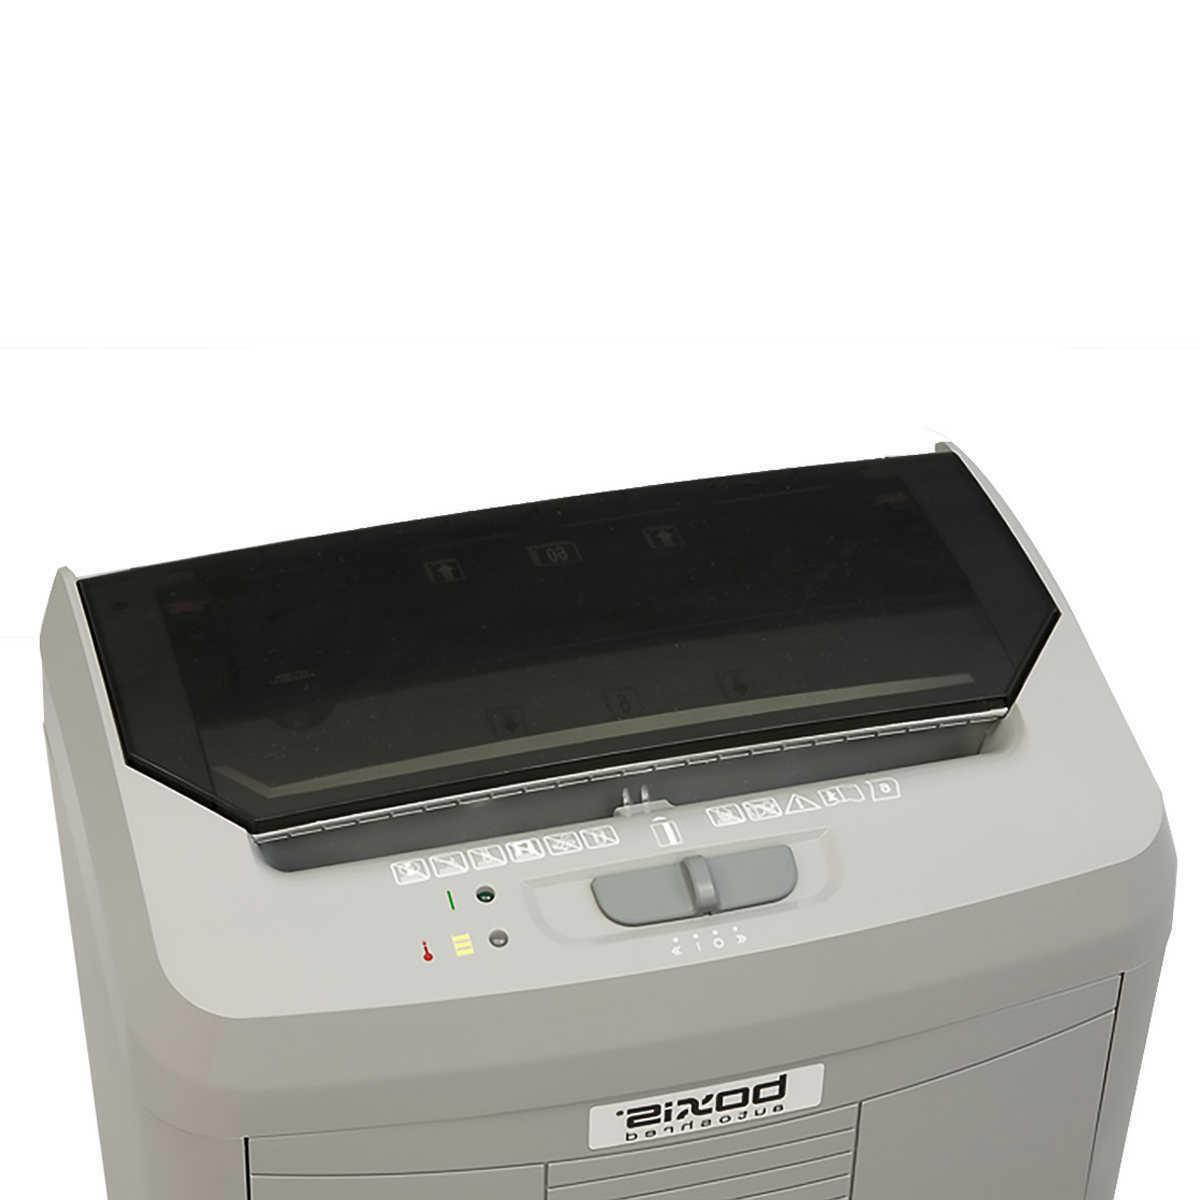 Autofeed Microcut Shredder